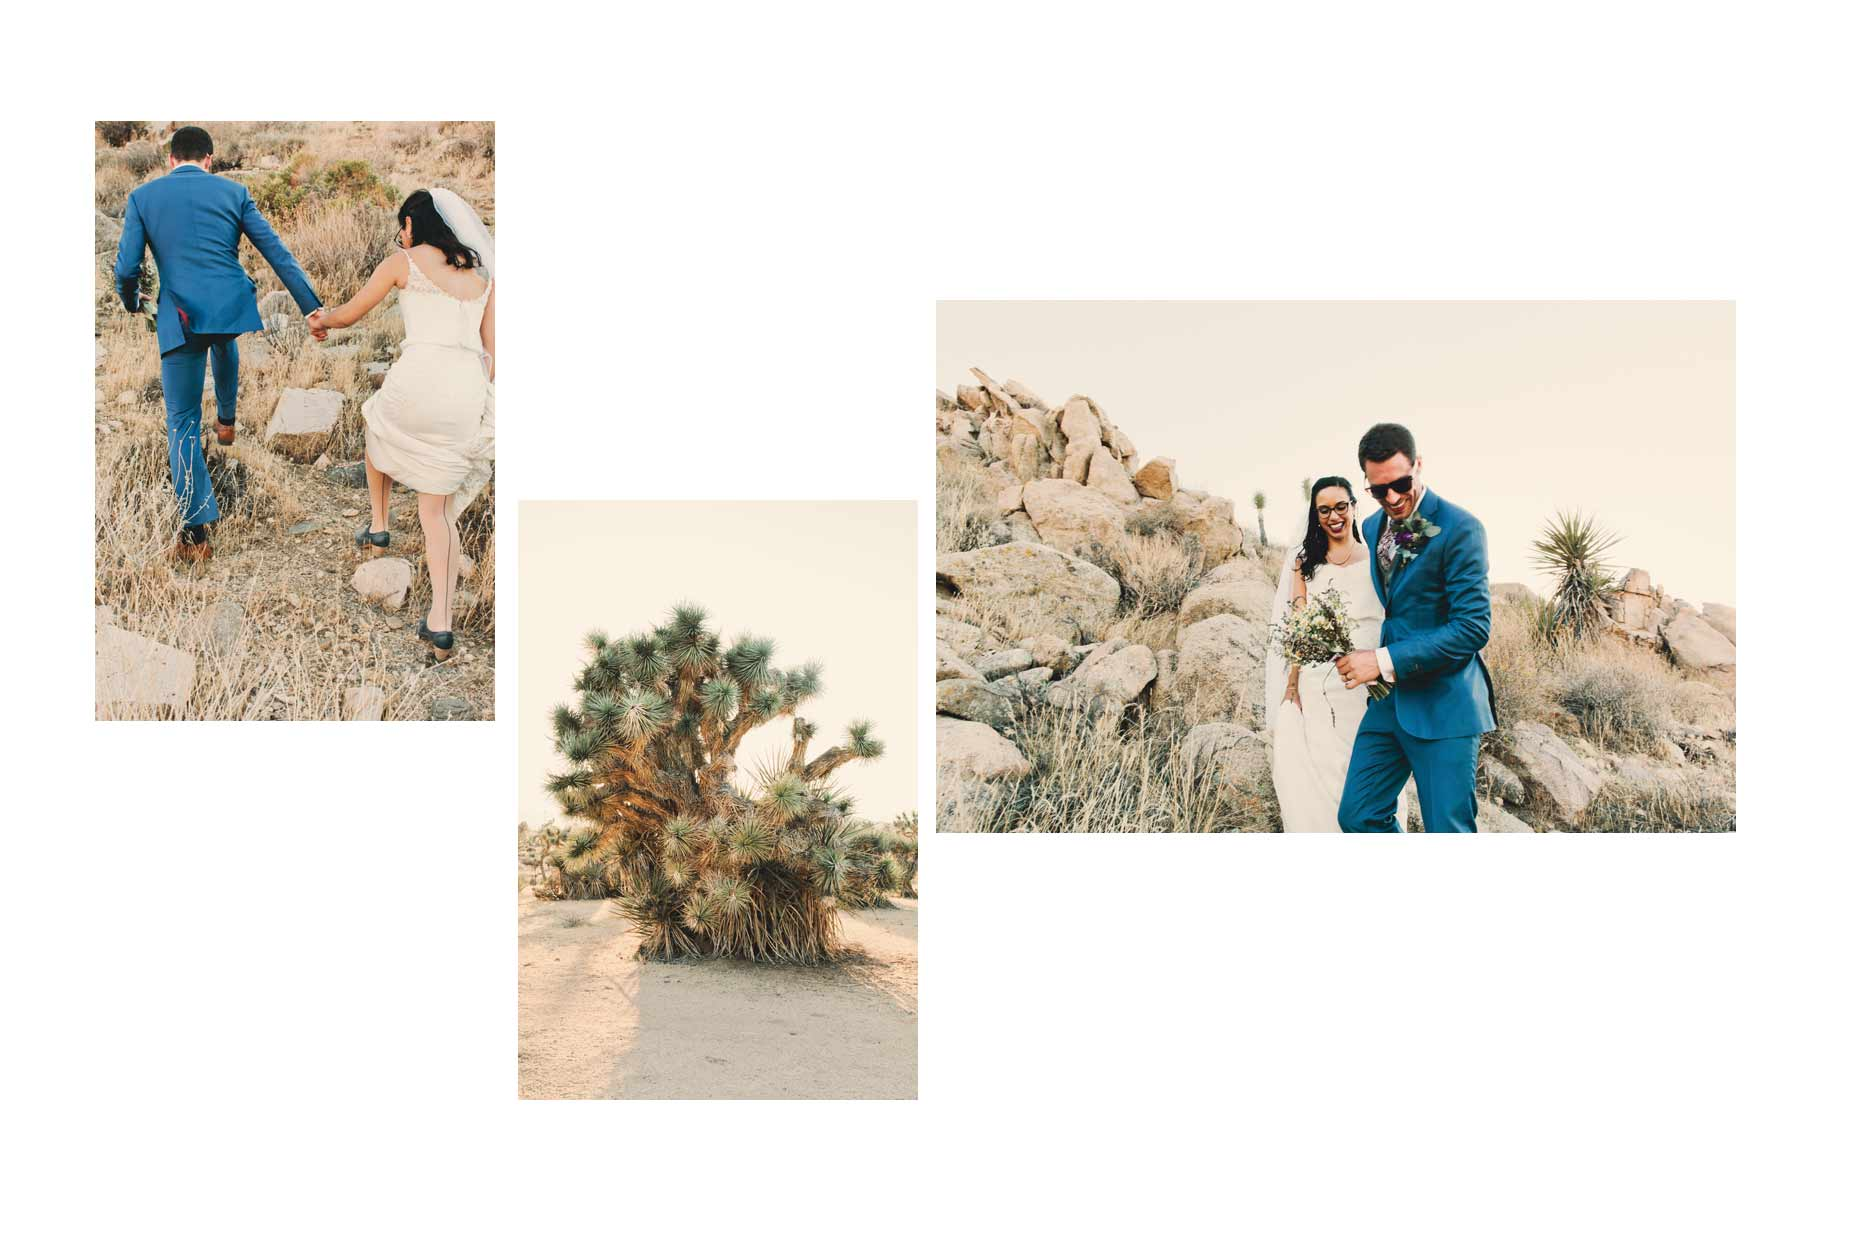 Joshua-Tree-Wedding-photographer-_-The-ruins-wedding-photographer-pioneertown-wedding-photographer-24